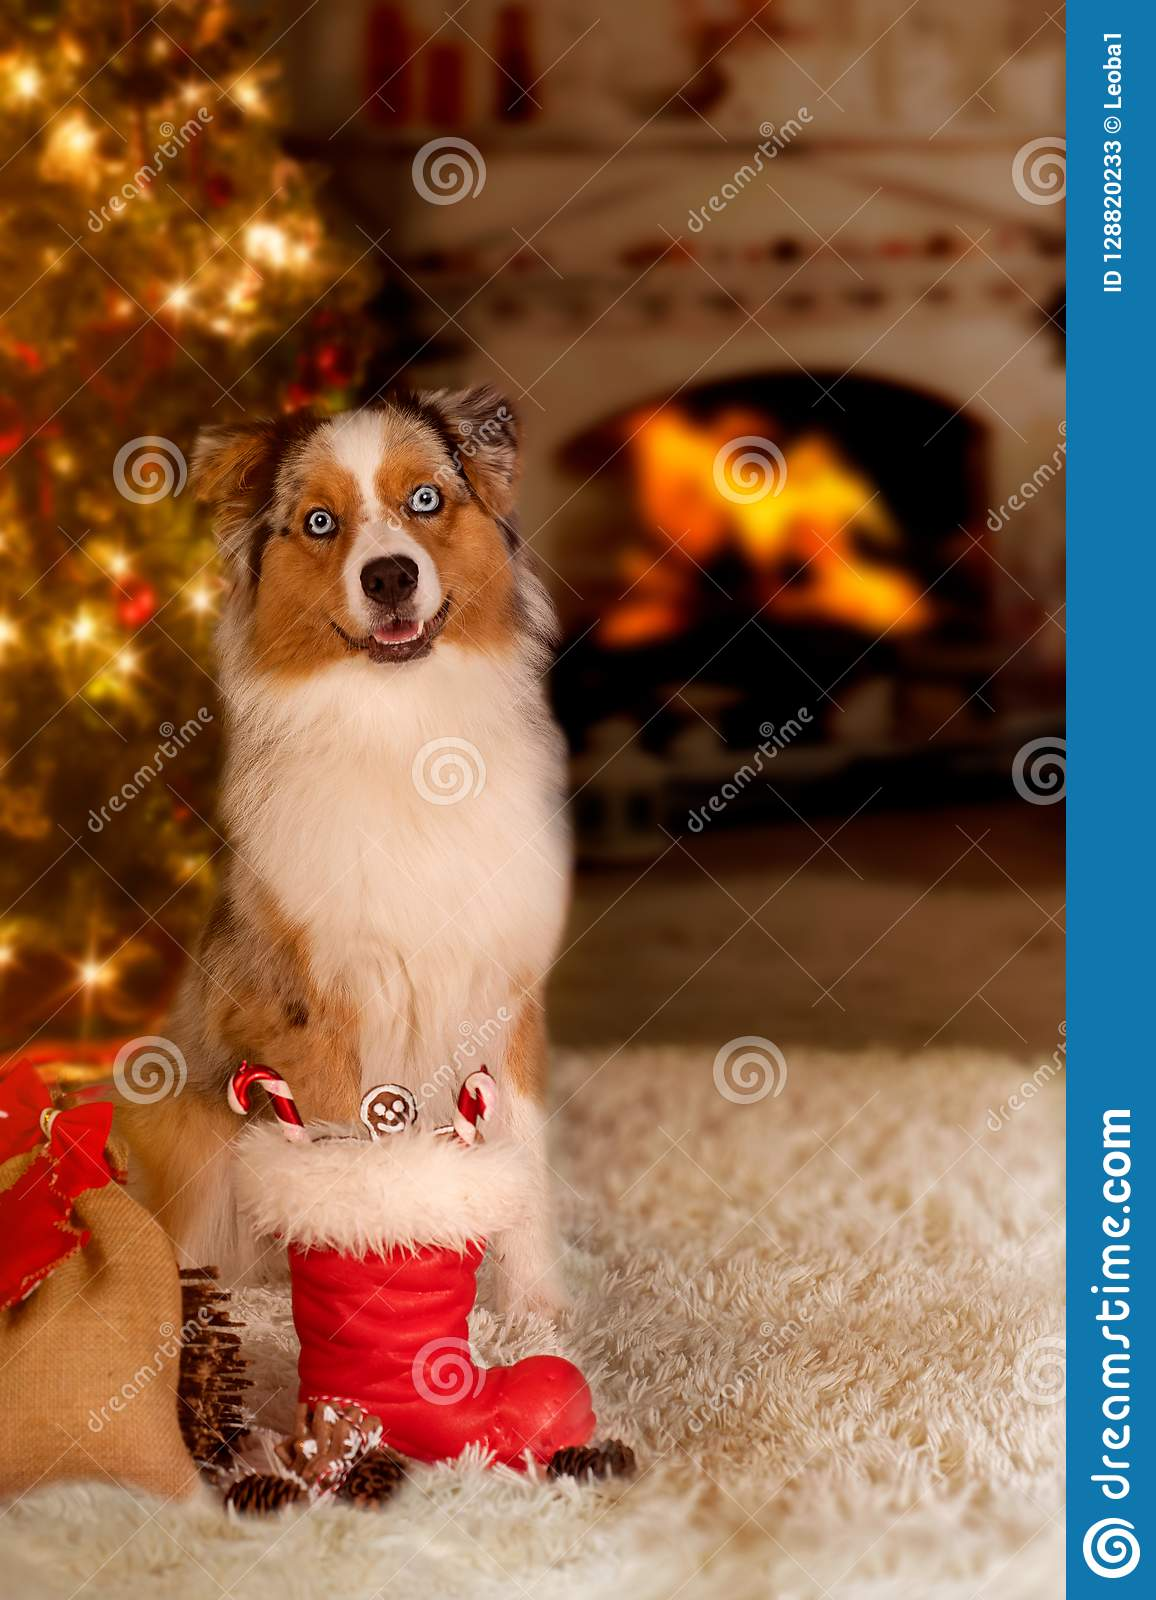 dog australian shepherd sitting in front of the christmas tree